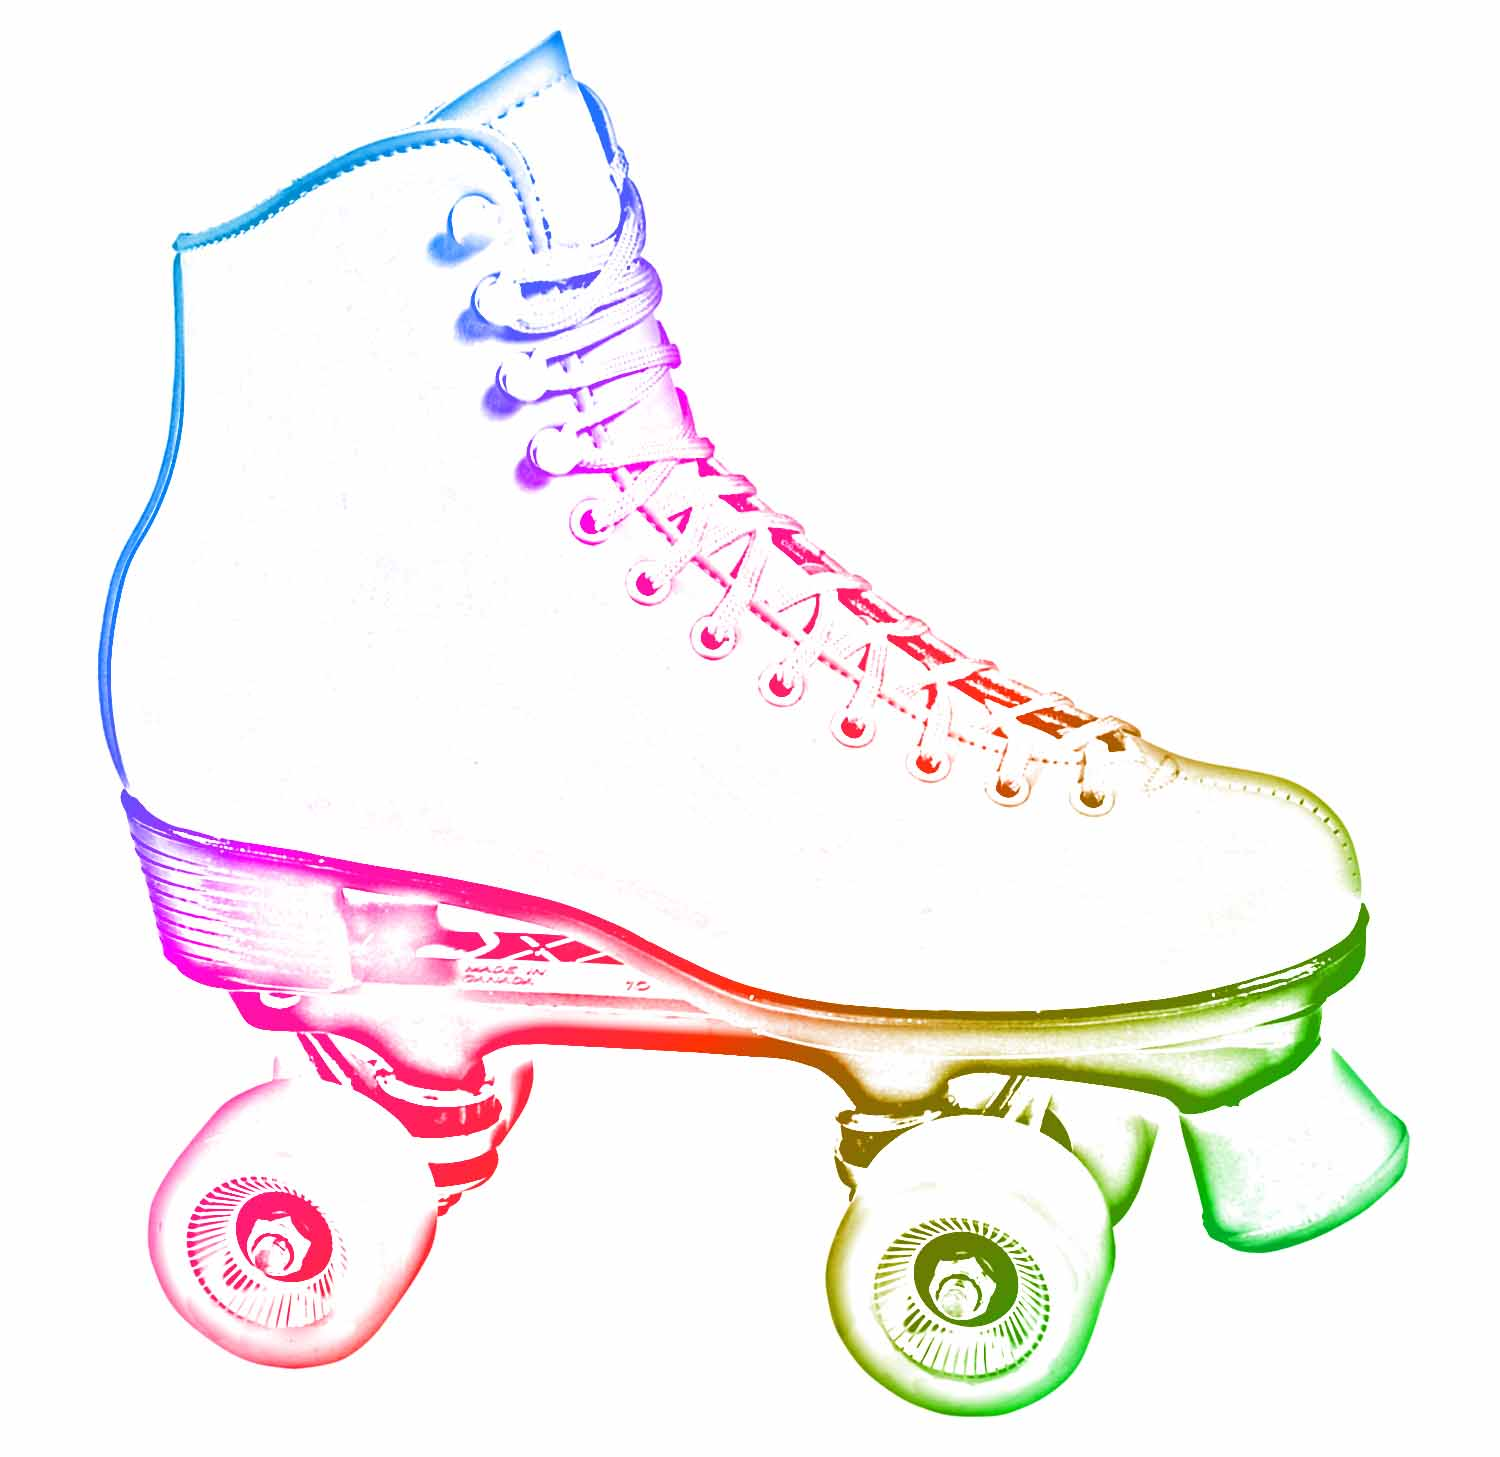 Free Rollerskating Cliparts, Download Free Clip Art, Free.